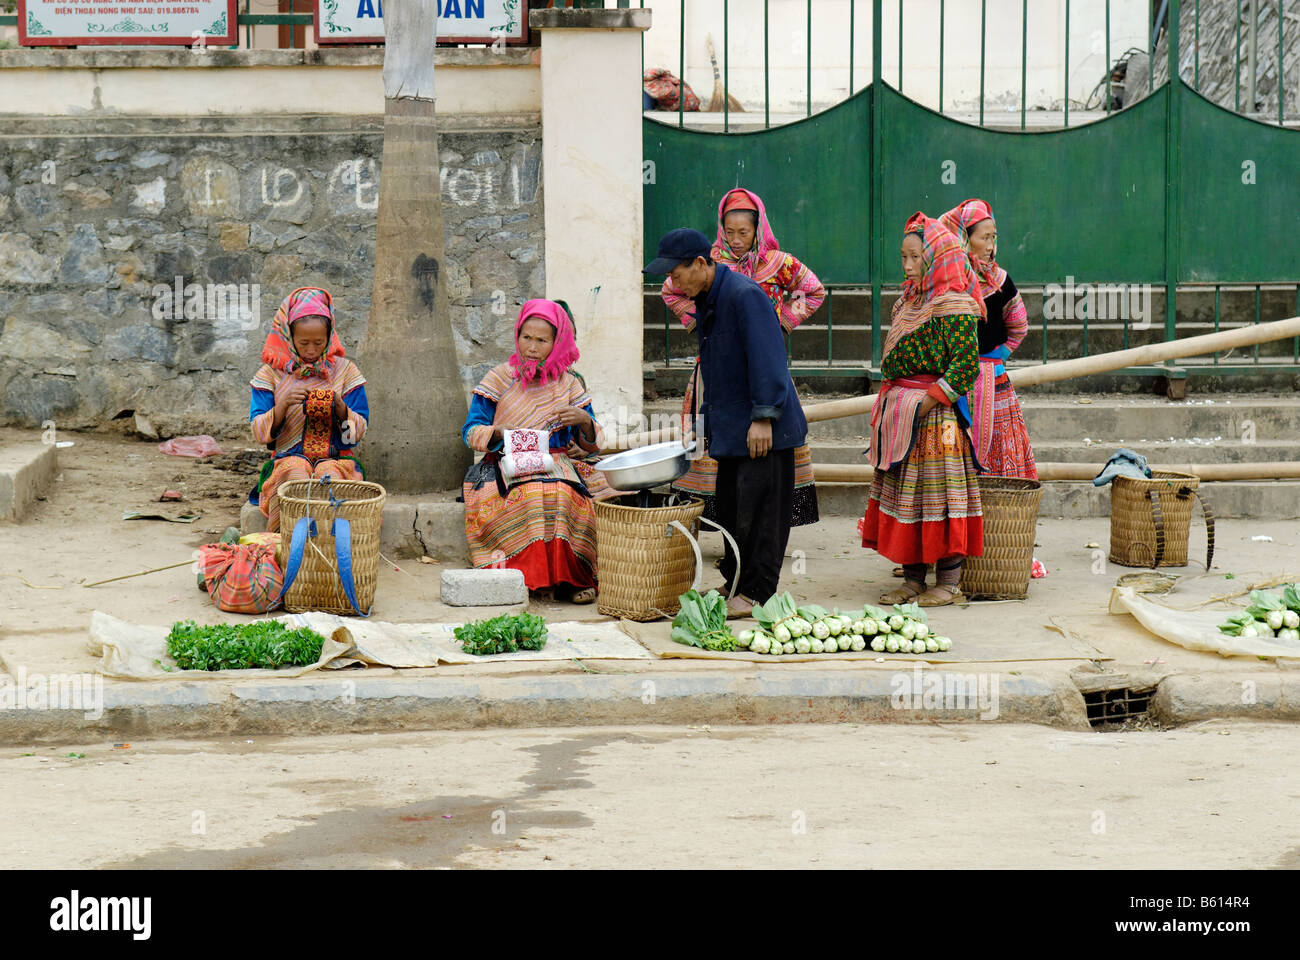 Flower Hmong women at a market, Ha Giang Province, North Vietnam, Asia - Stock Image